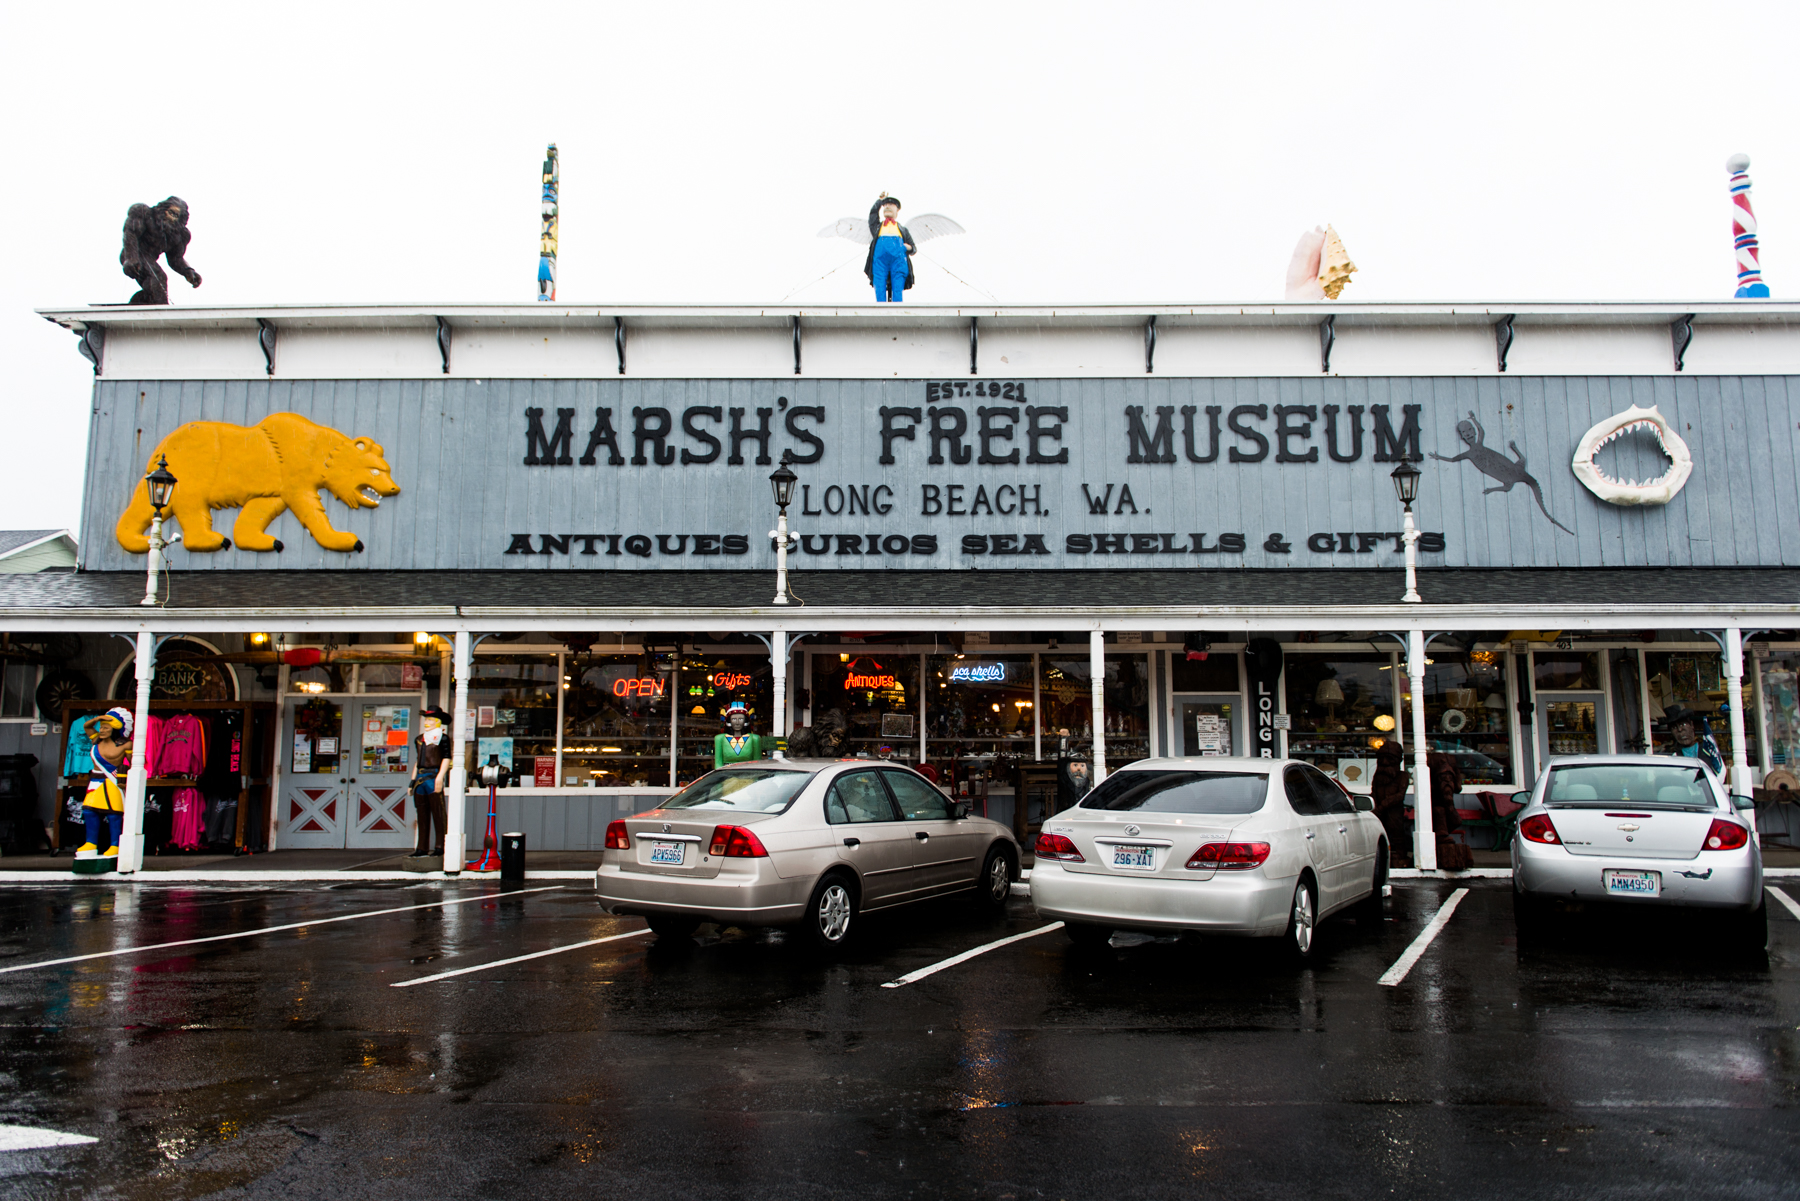 For all things gloriously wacky and tacky, you need look no further Marsh's Free Museum in Long Beach. Quite possibly one of the most peculiar sites in Washington state, the combination gift shop and museum is home to the legendary Jake, the Alligator Man,  as well as a motley assortment of creatures like a two headed calf, a Wyoming werewolf and tchotchkes galore. Join us in a exploration of all the weirdness within after the jump! (Image: Chona Kasinger/ Seattle Refined)